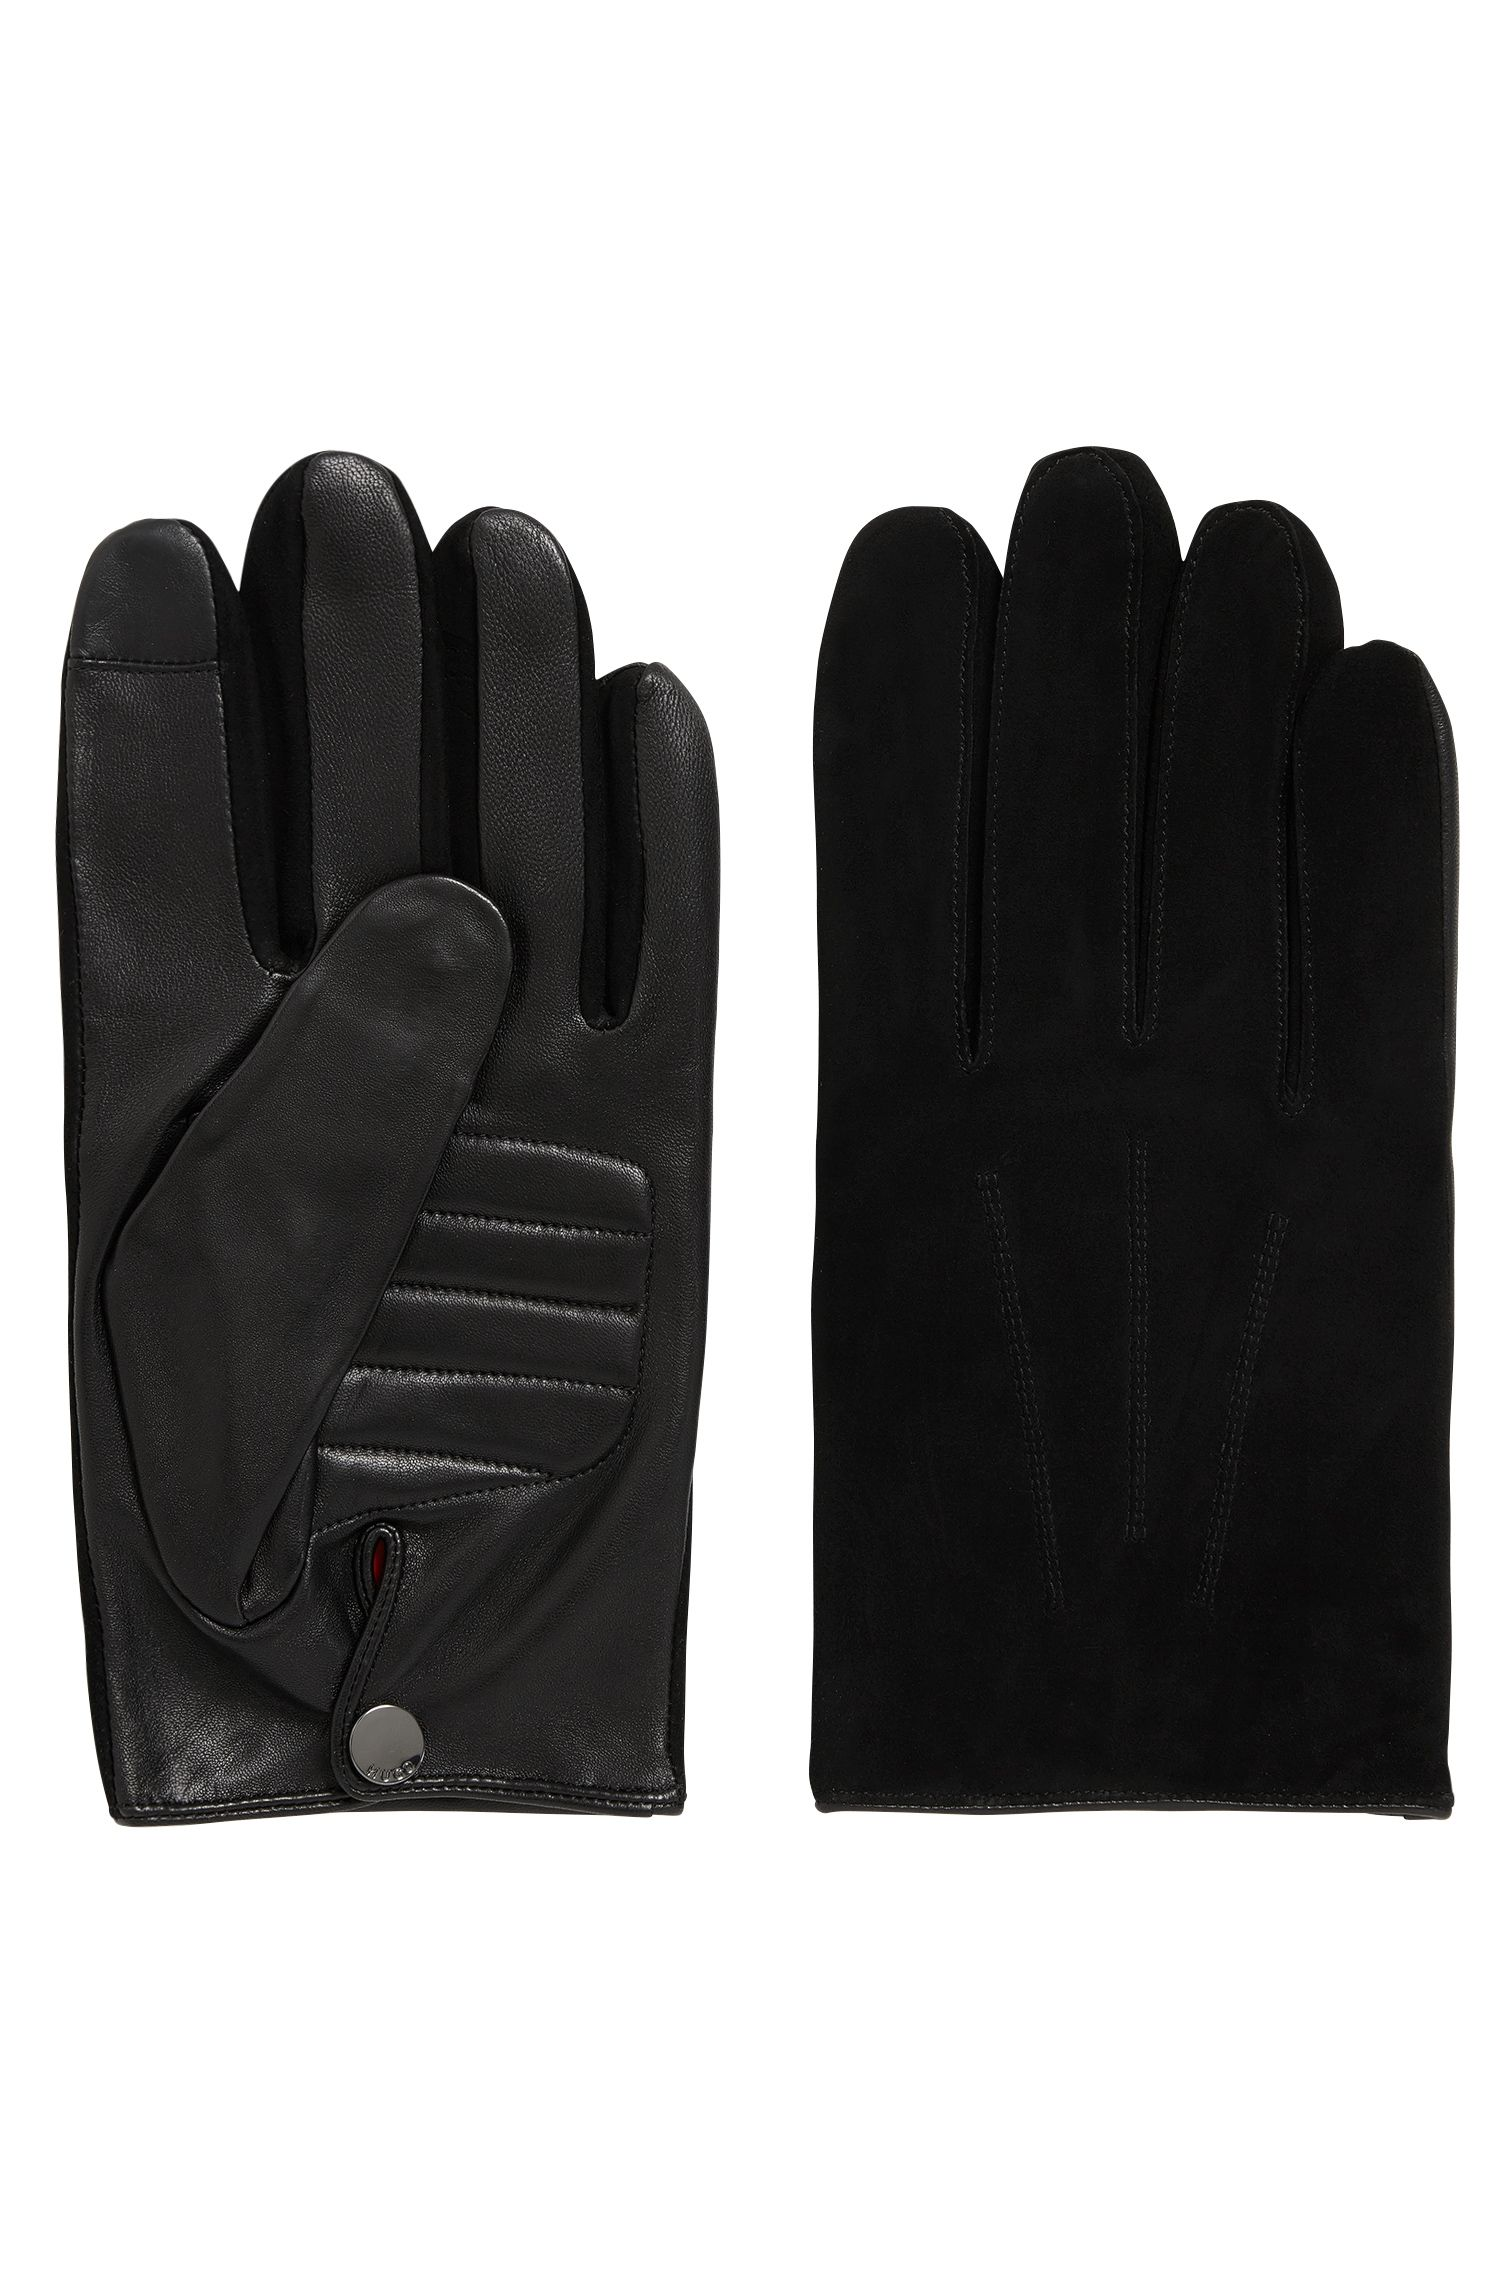 Cashmere-lined nappa leather gloves with touchscreen function